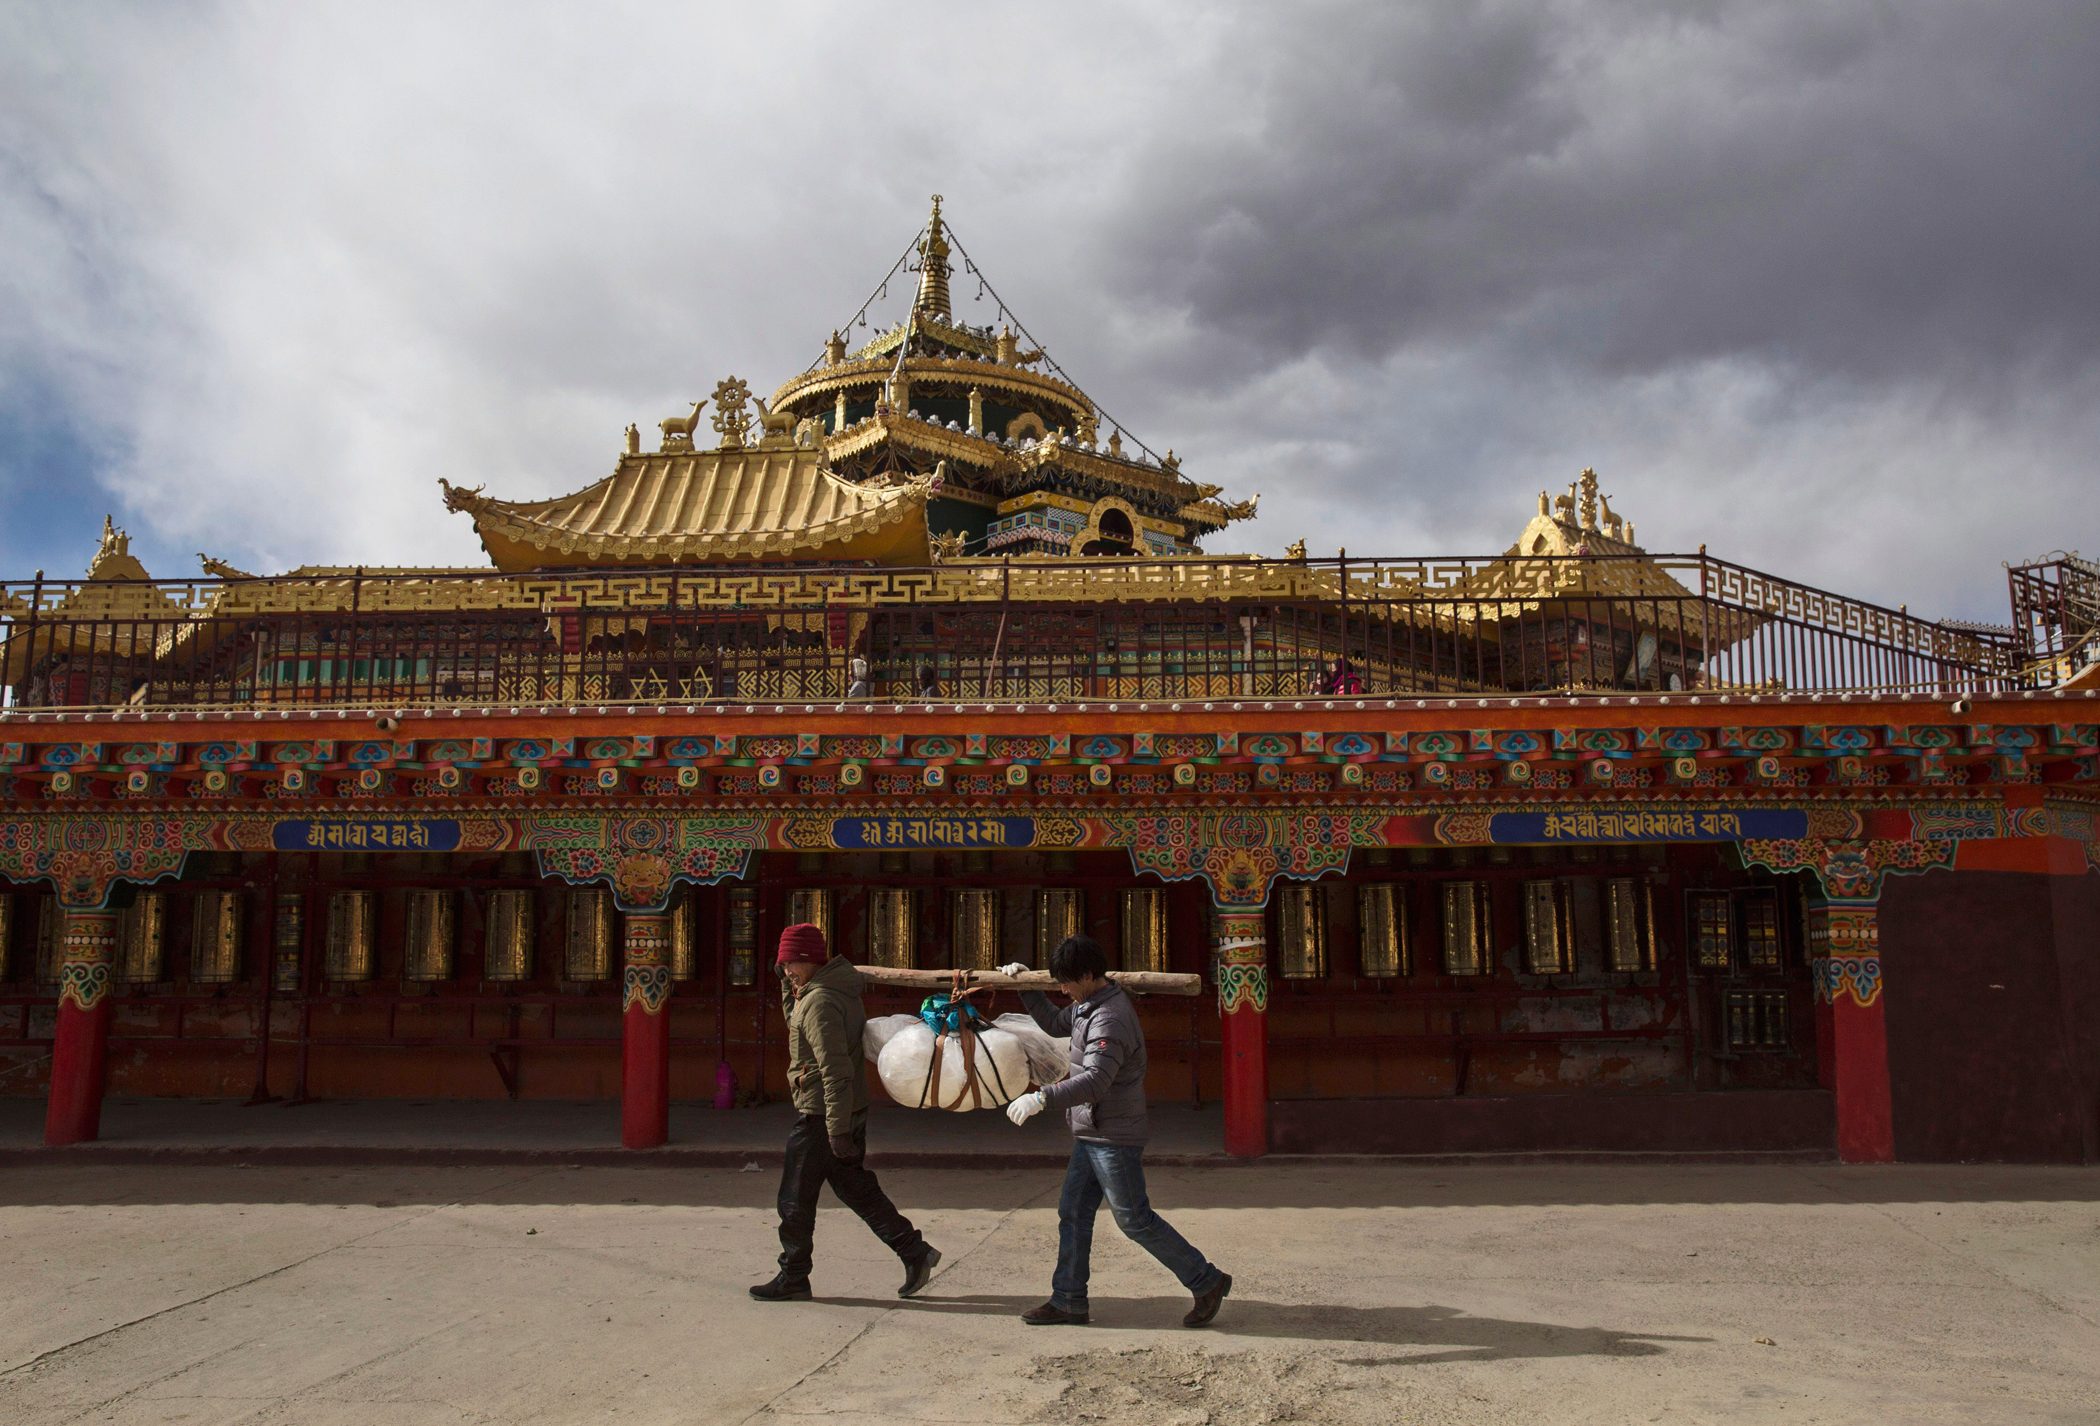 Tibetan Buddhists circumambulate a monastery with the body of a relative before sky burial at the Larung Wuming Buddhist Institute on Oct. 30.